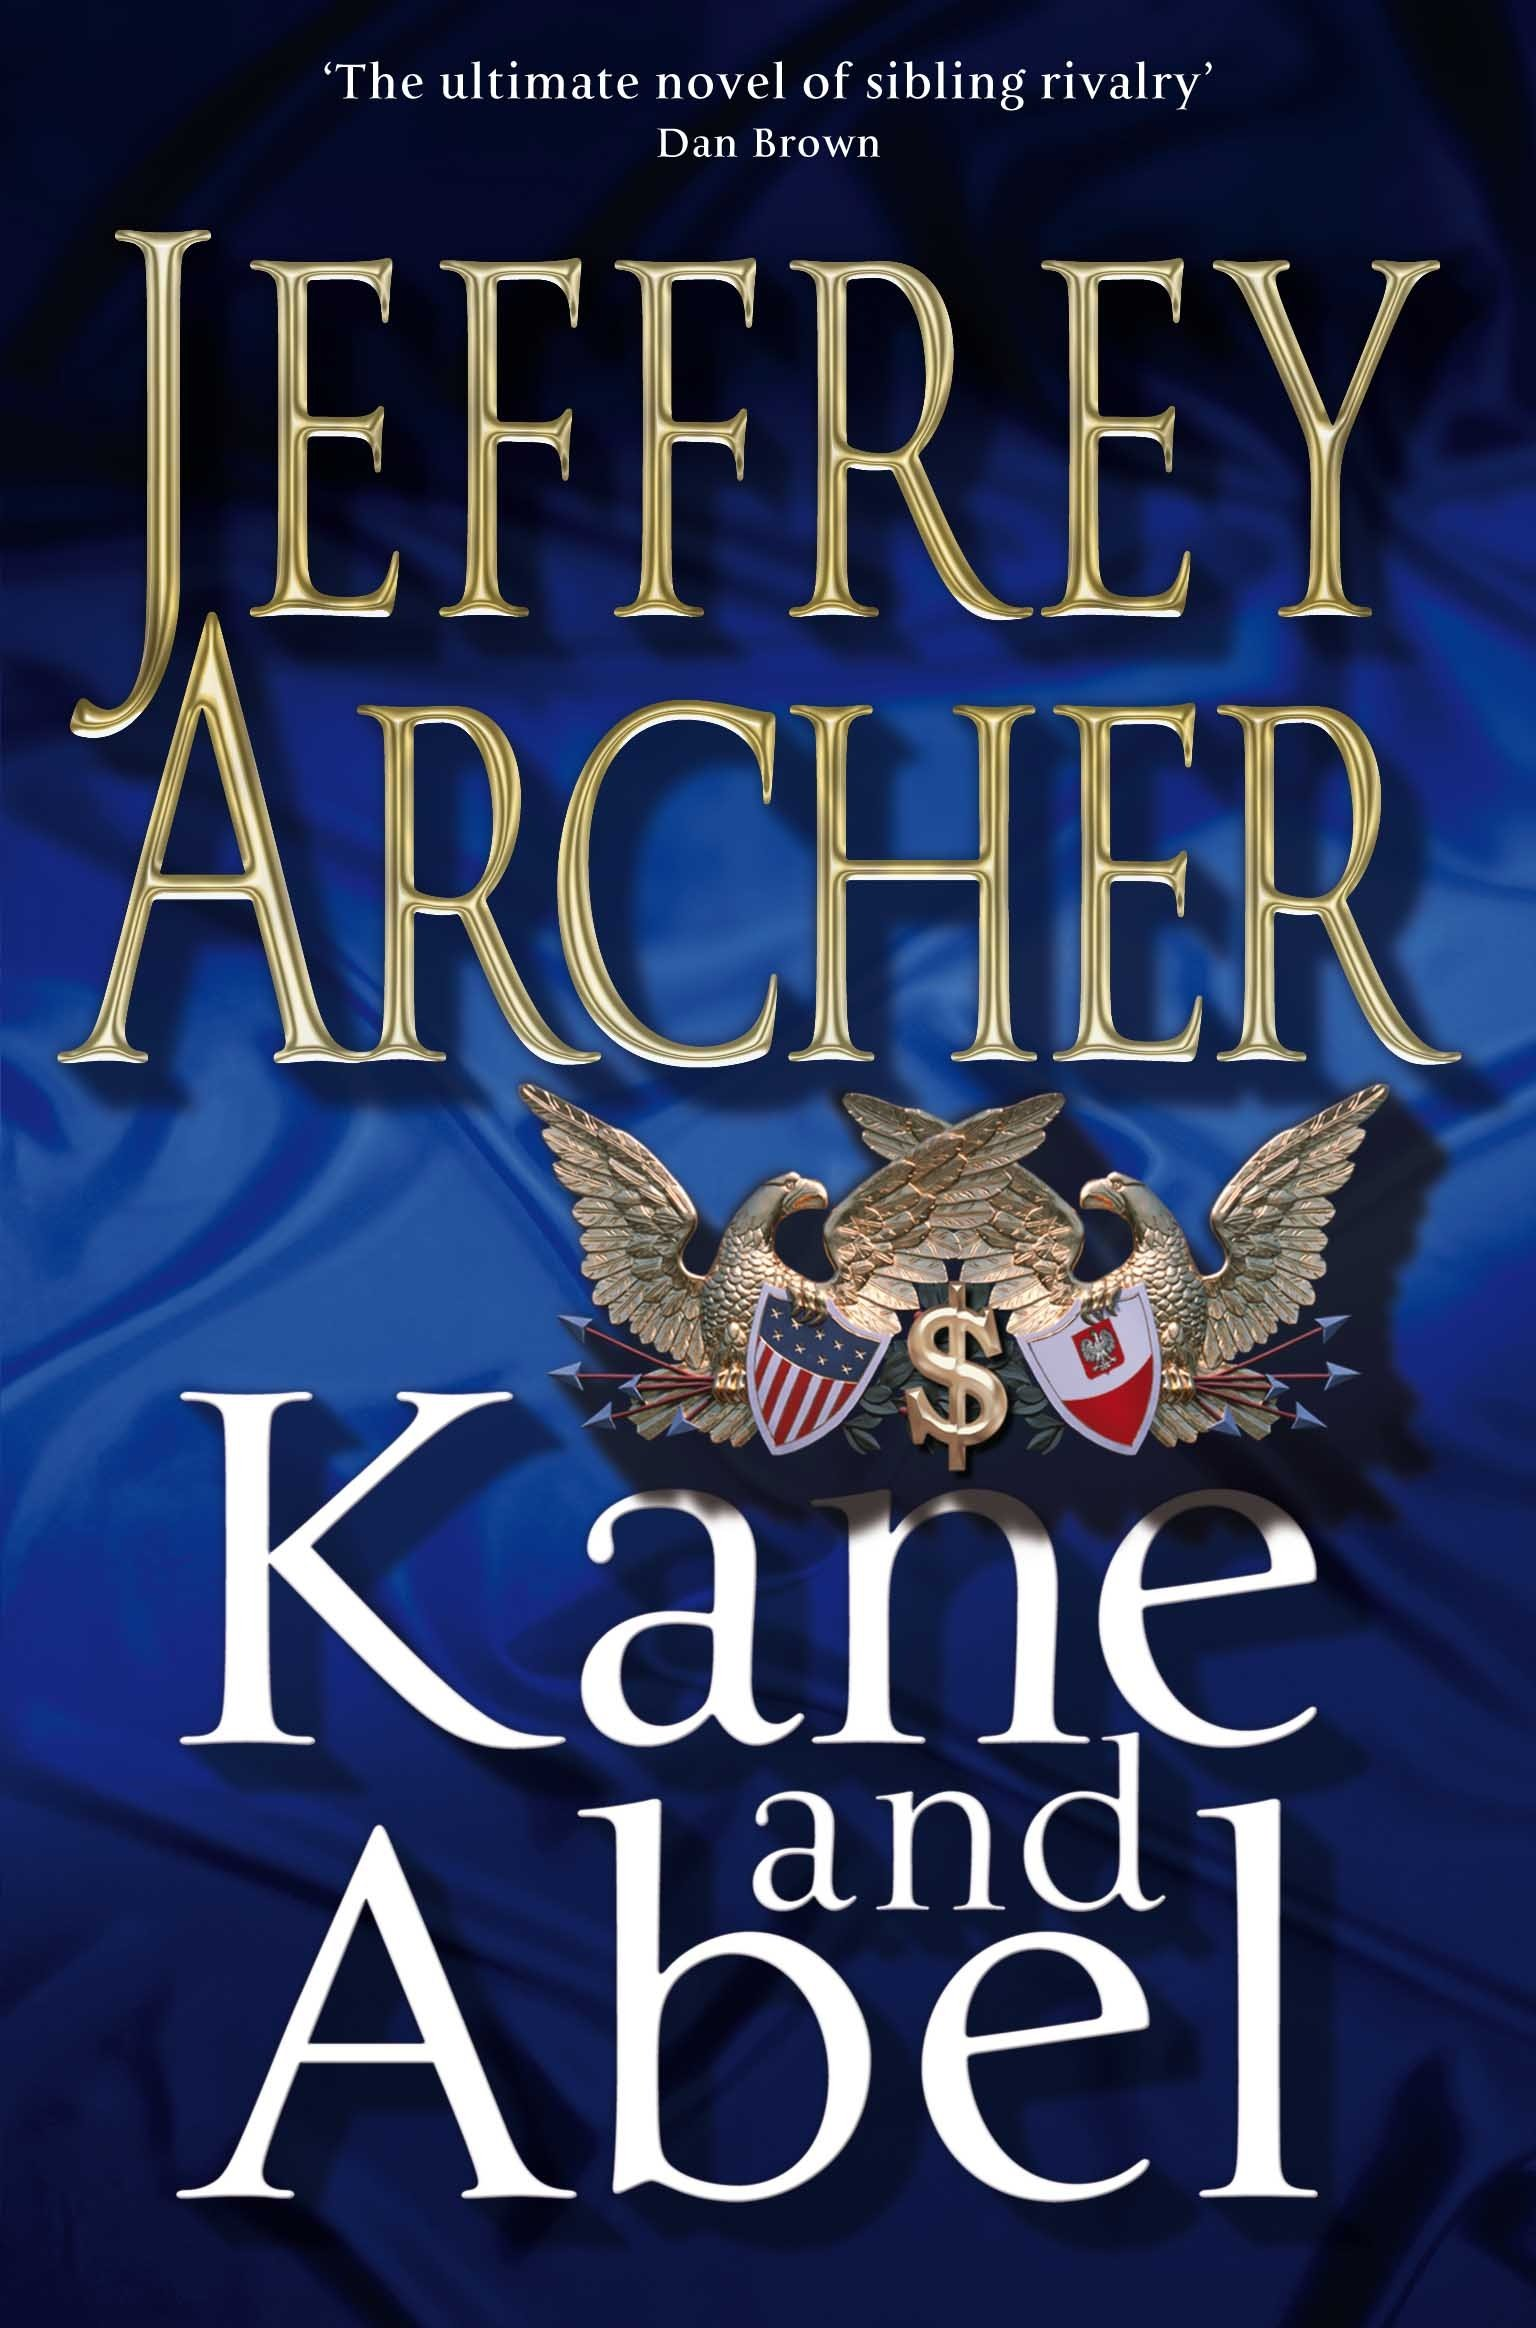 Image result for kane and abel jeffrey archer